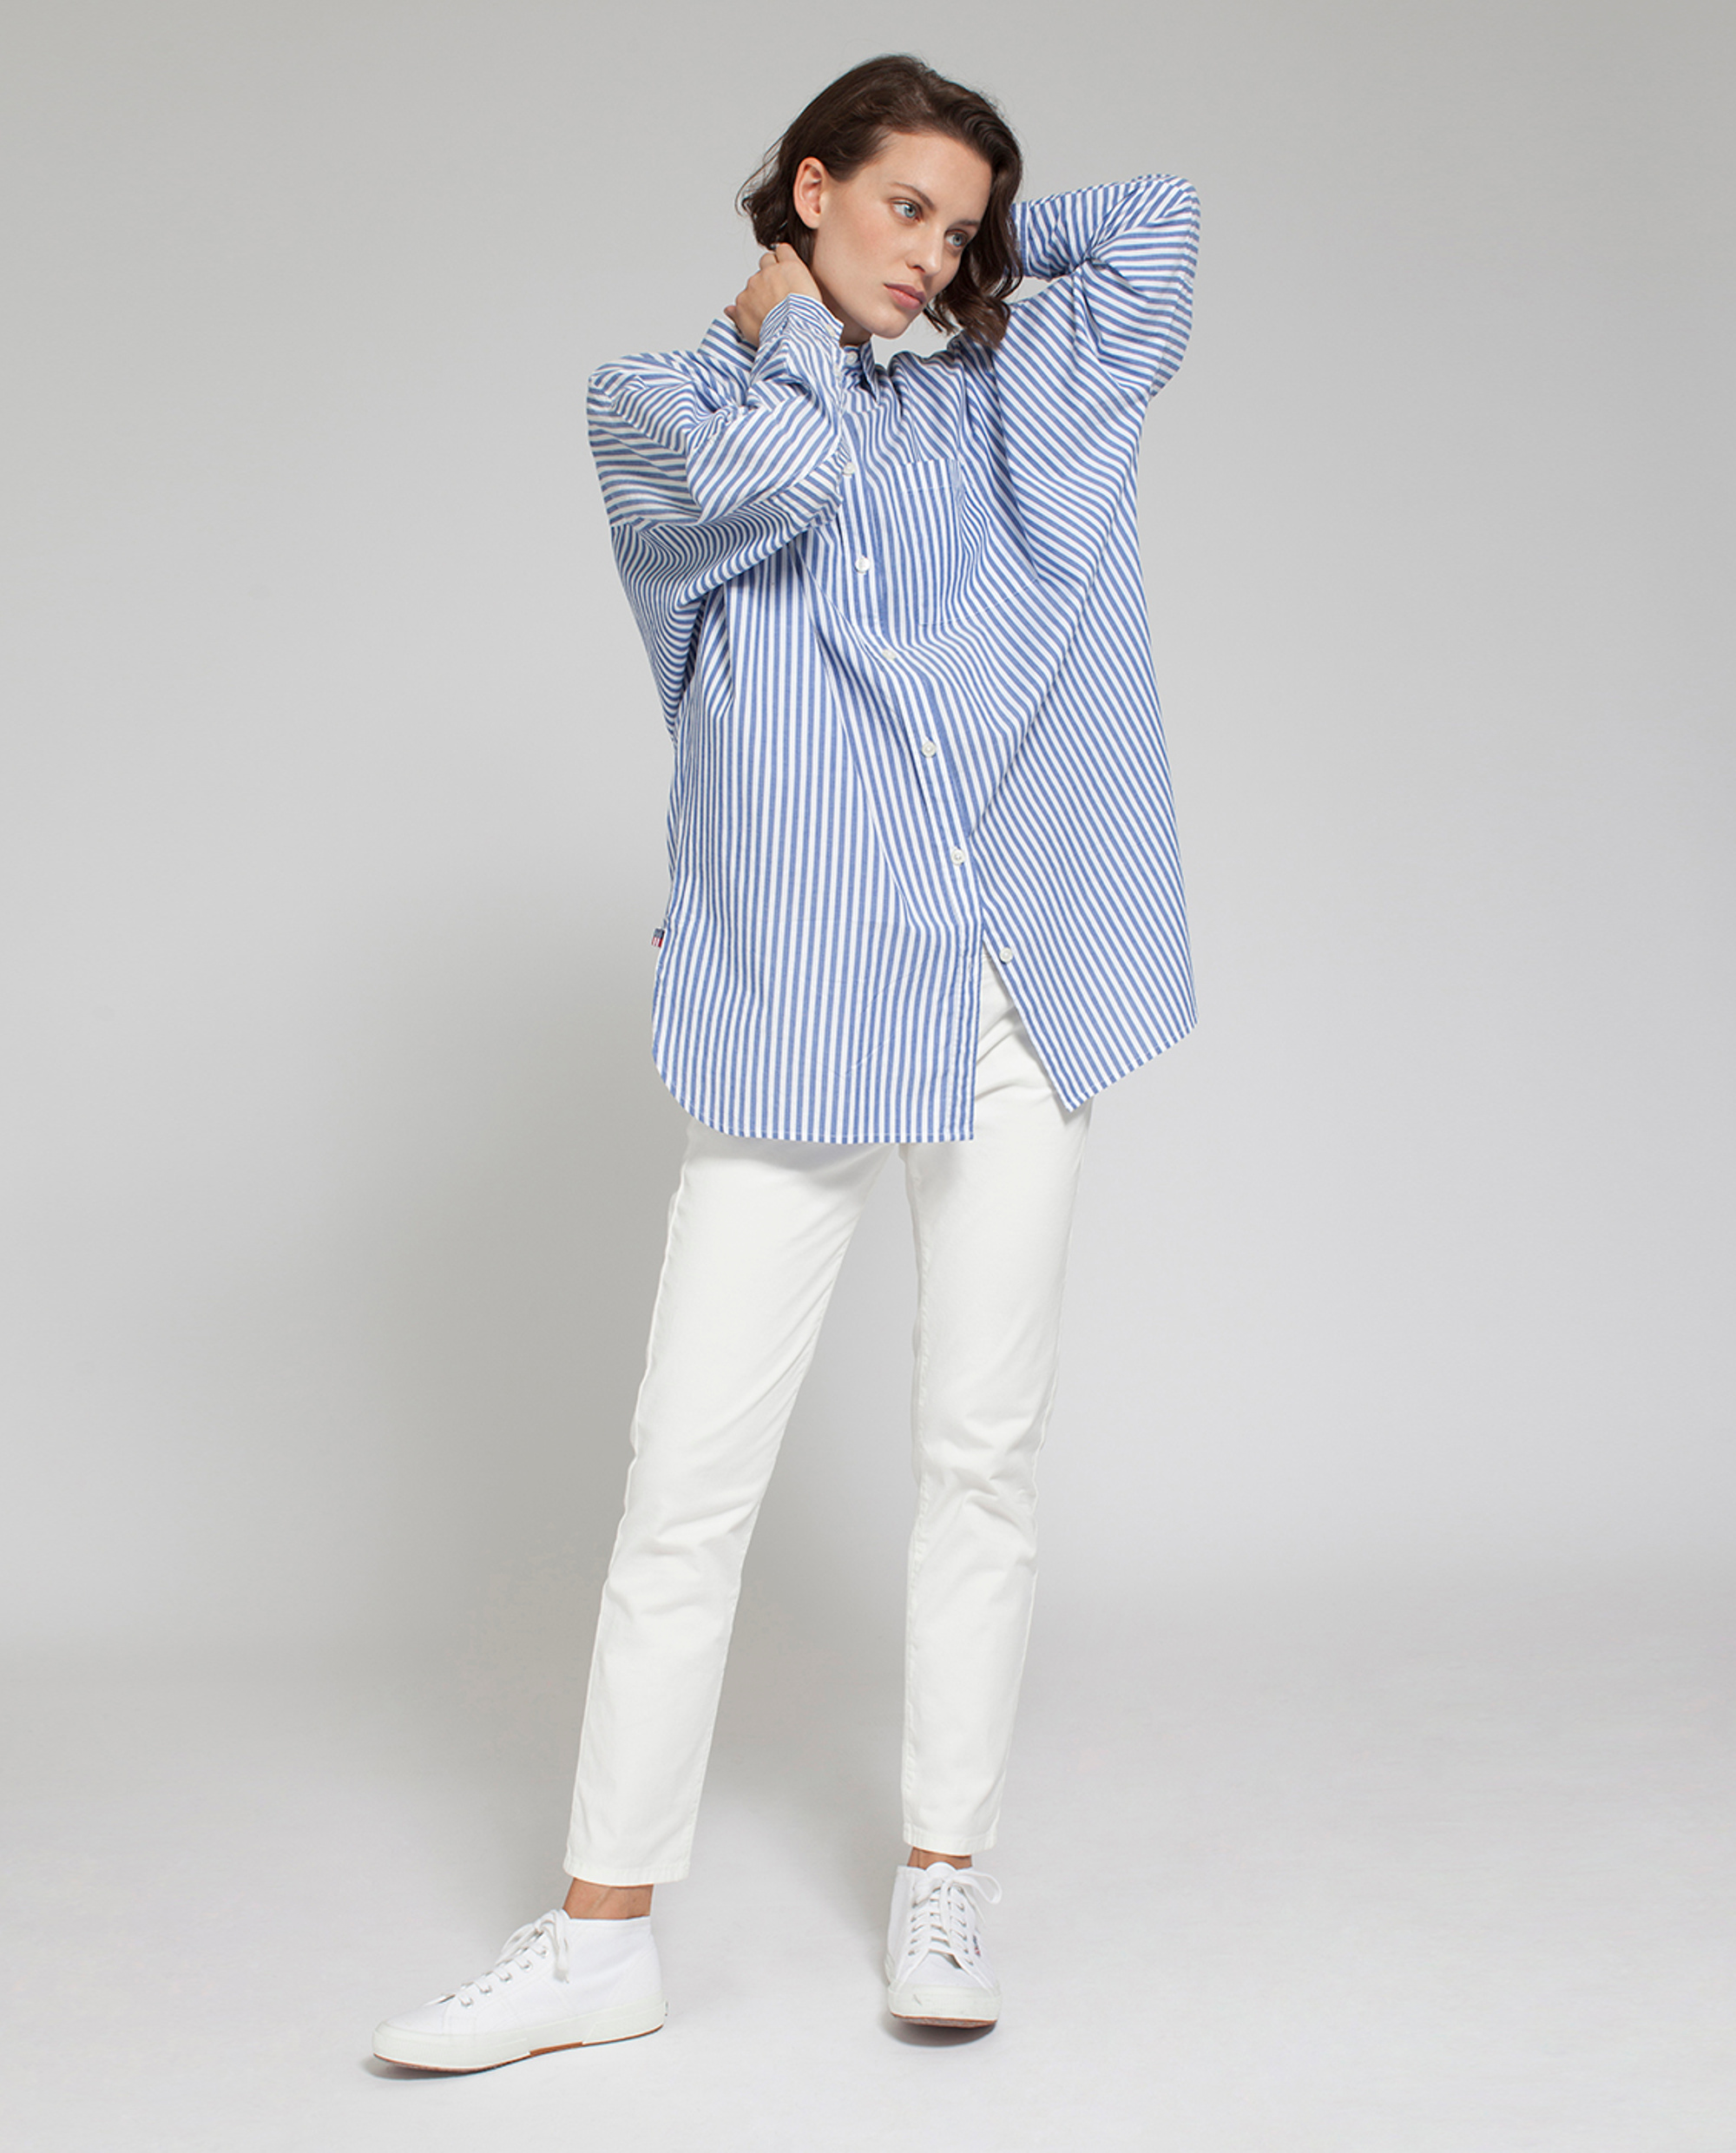 Sophia Cotton Shirt, Blue/White